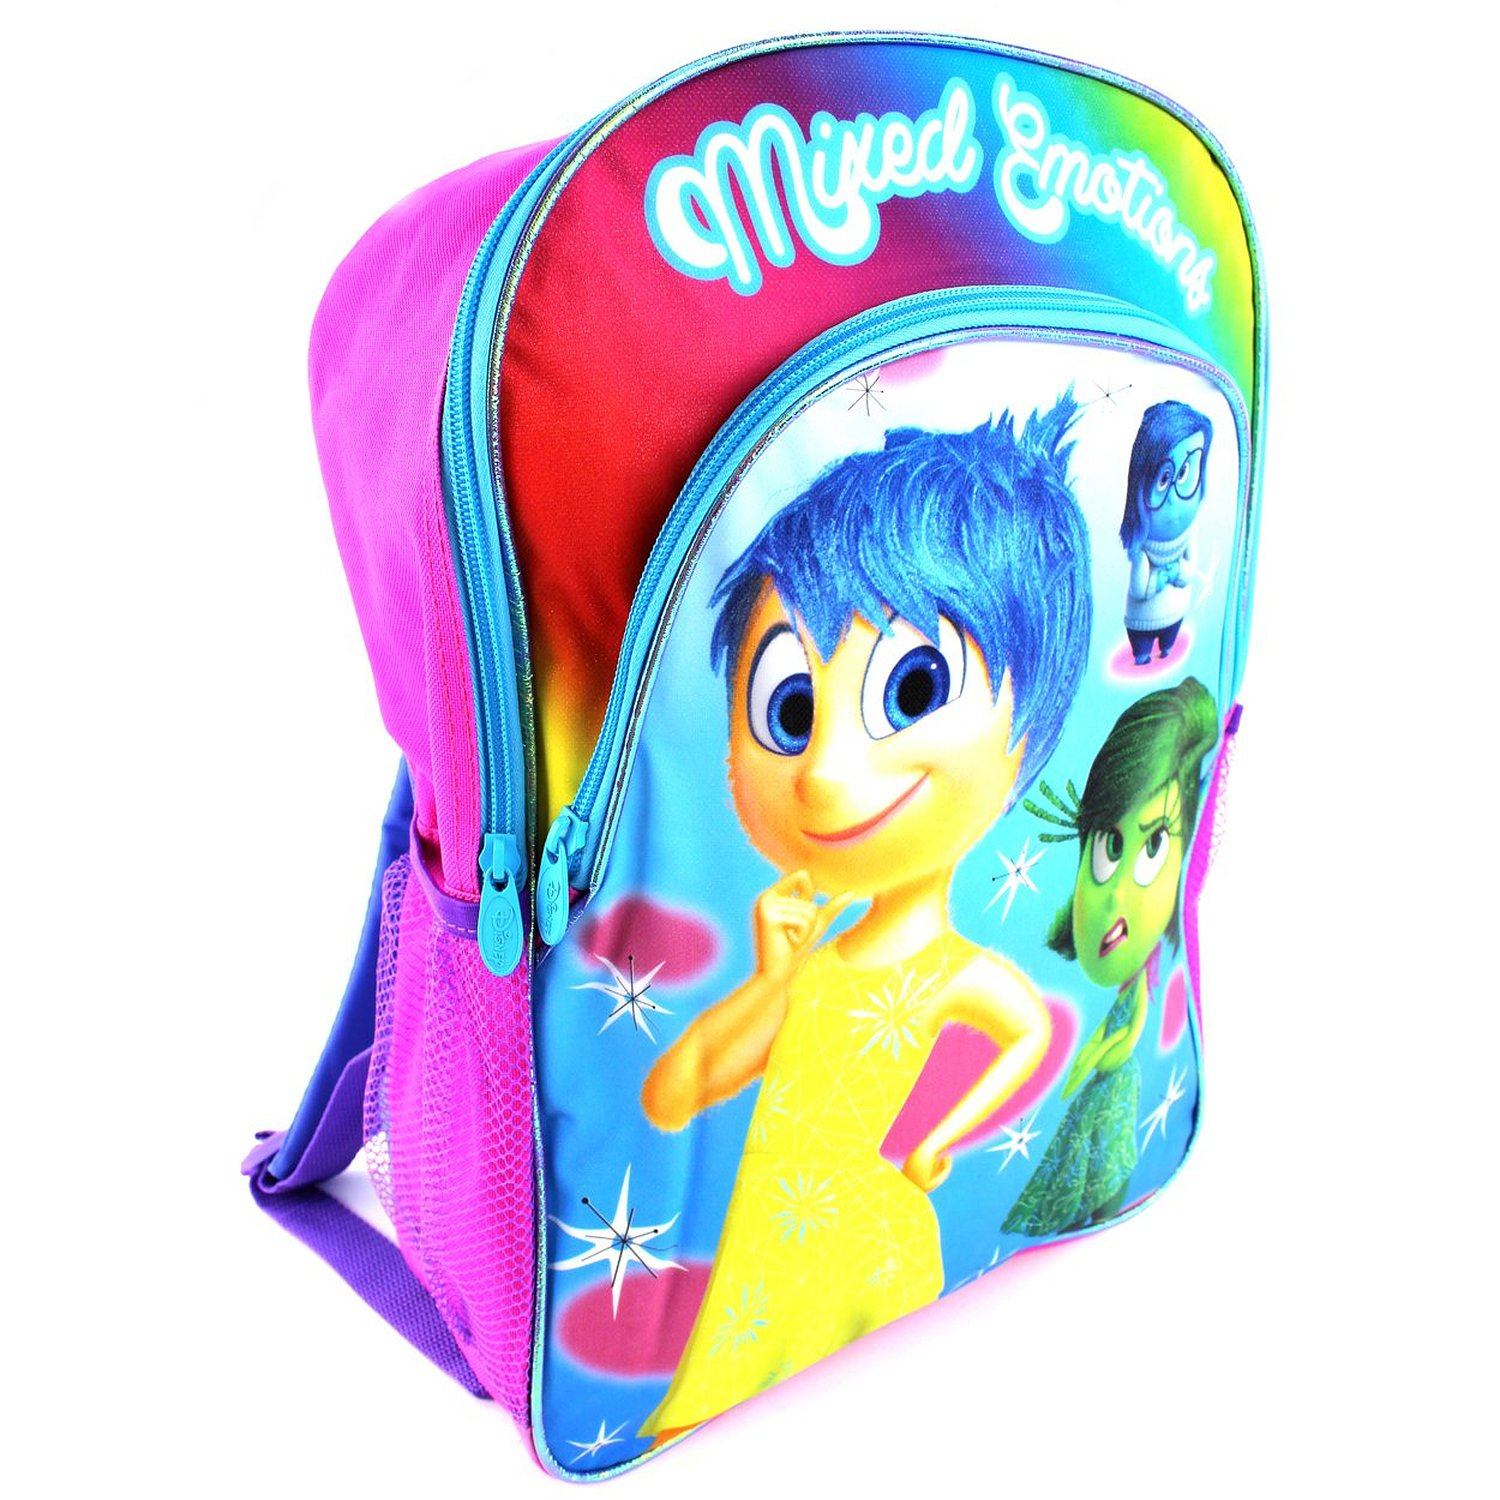 """16"""" INSIDE OUT Backpack - Mixed Emotions - Features Joy, Disgust, and Sadness with rainbow coloring and pink and purple accents."""